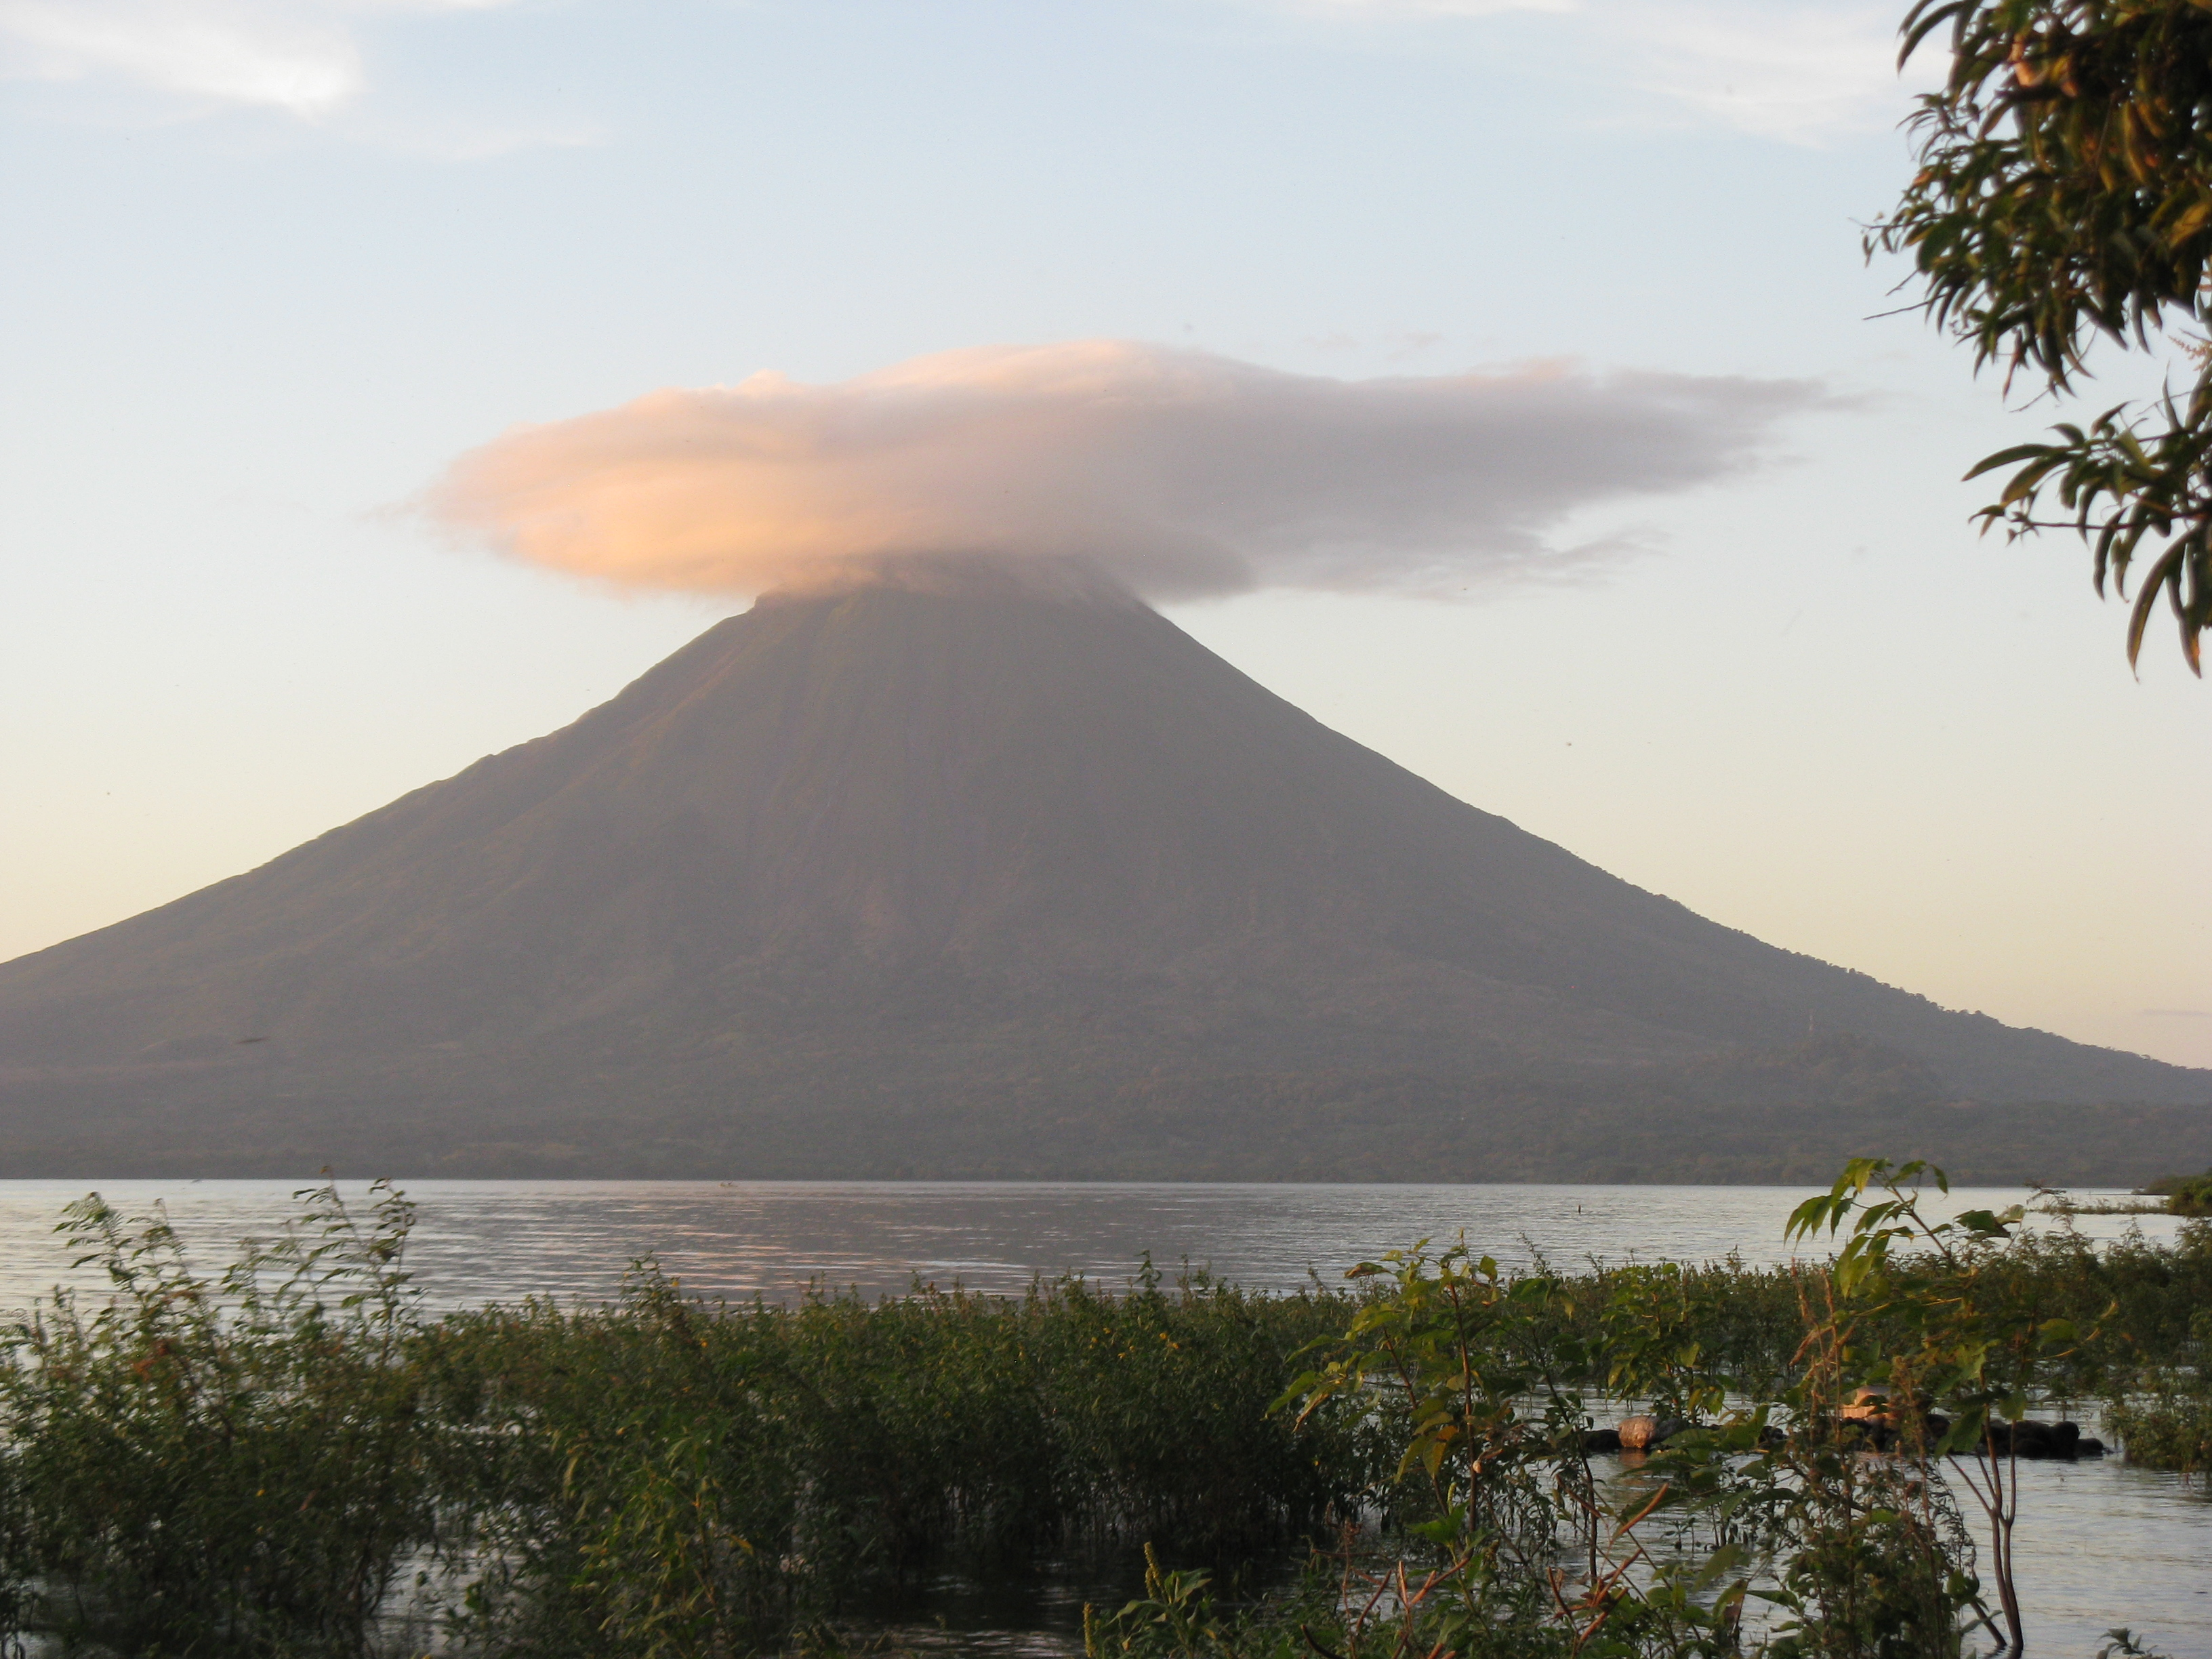 Jan 6-10: Drama on Isla de Ometepe